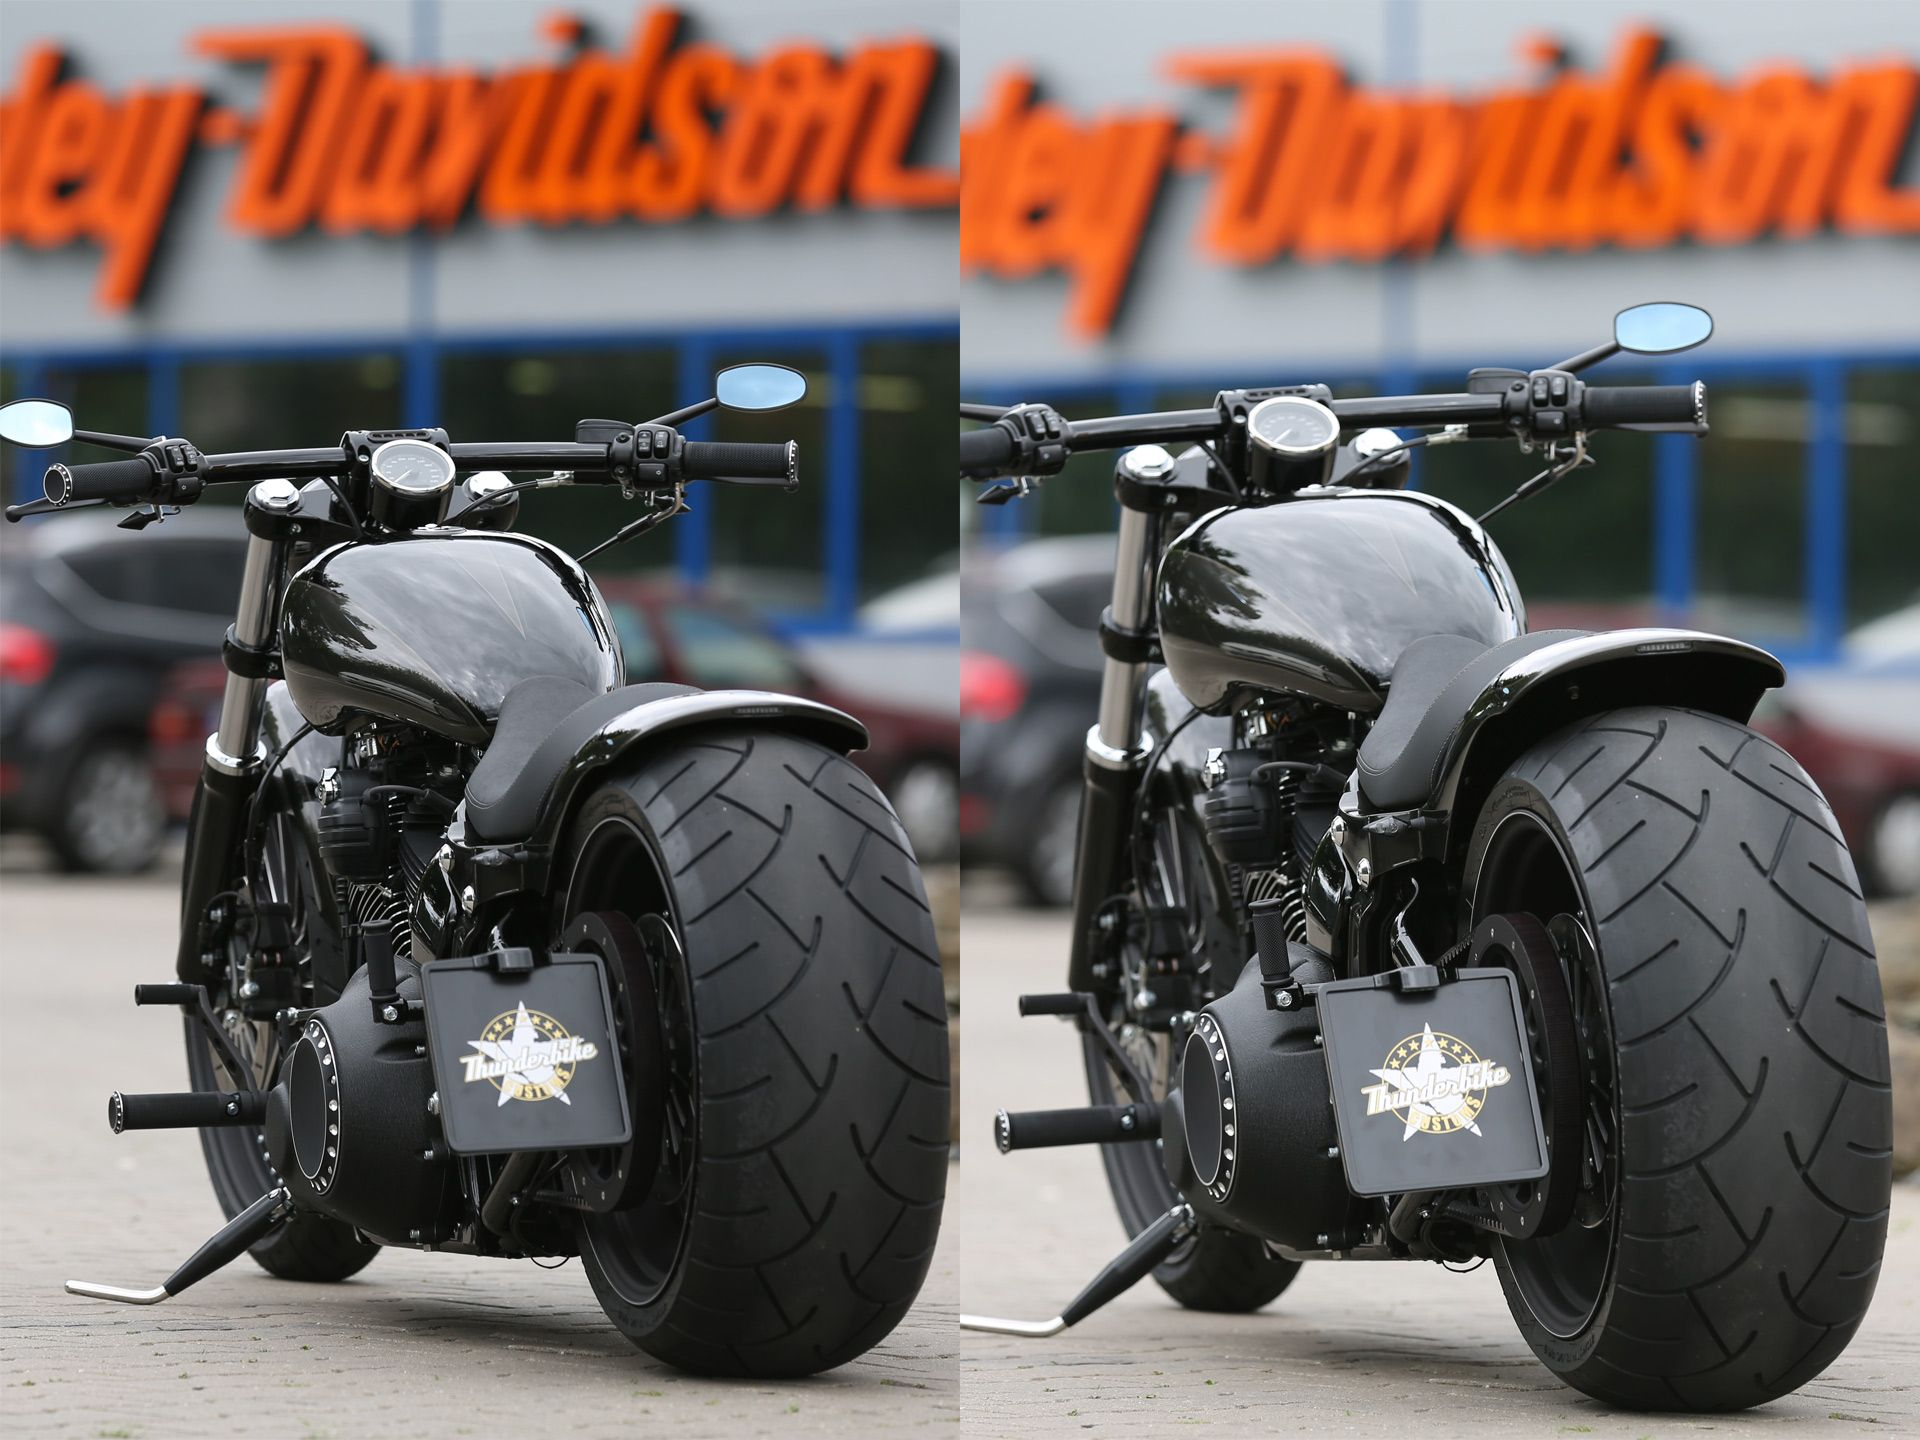 Air ride suspension kit for breakout Harley, Air ride